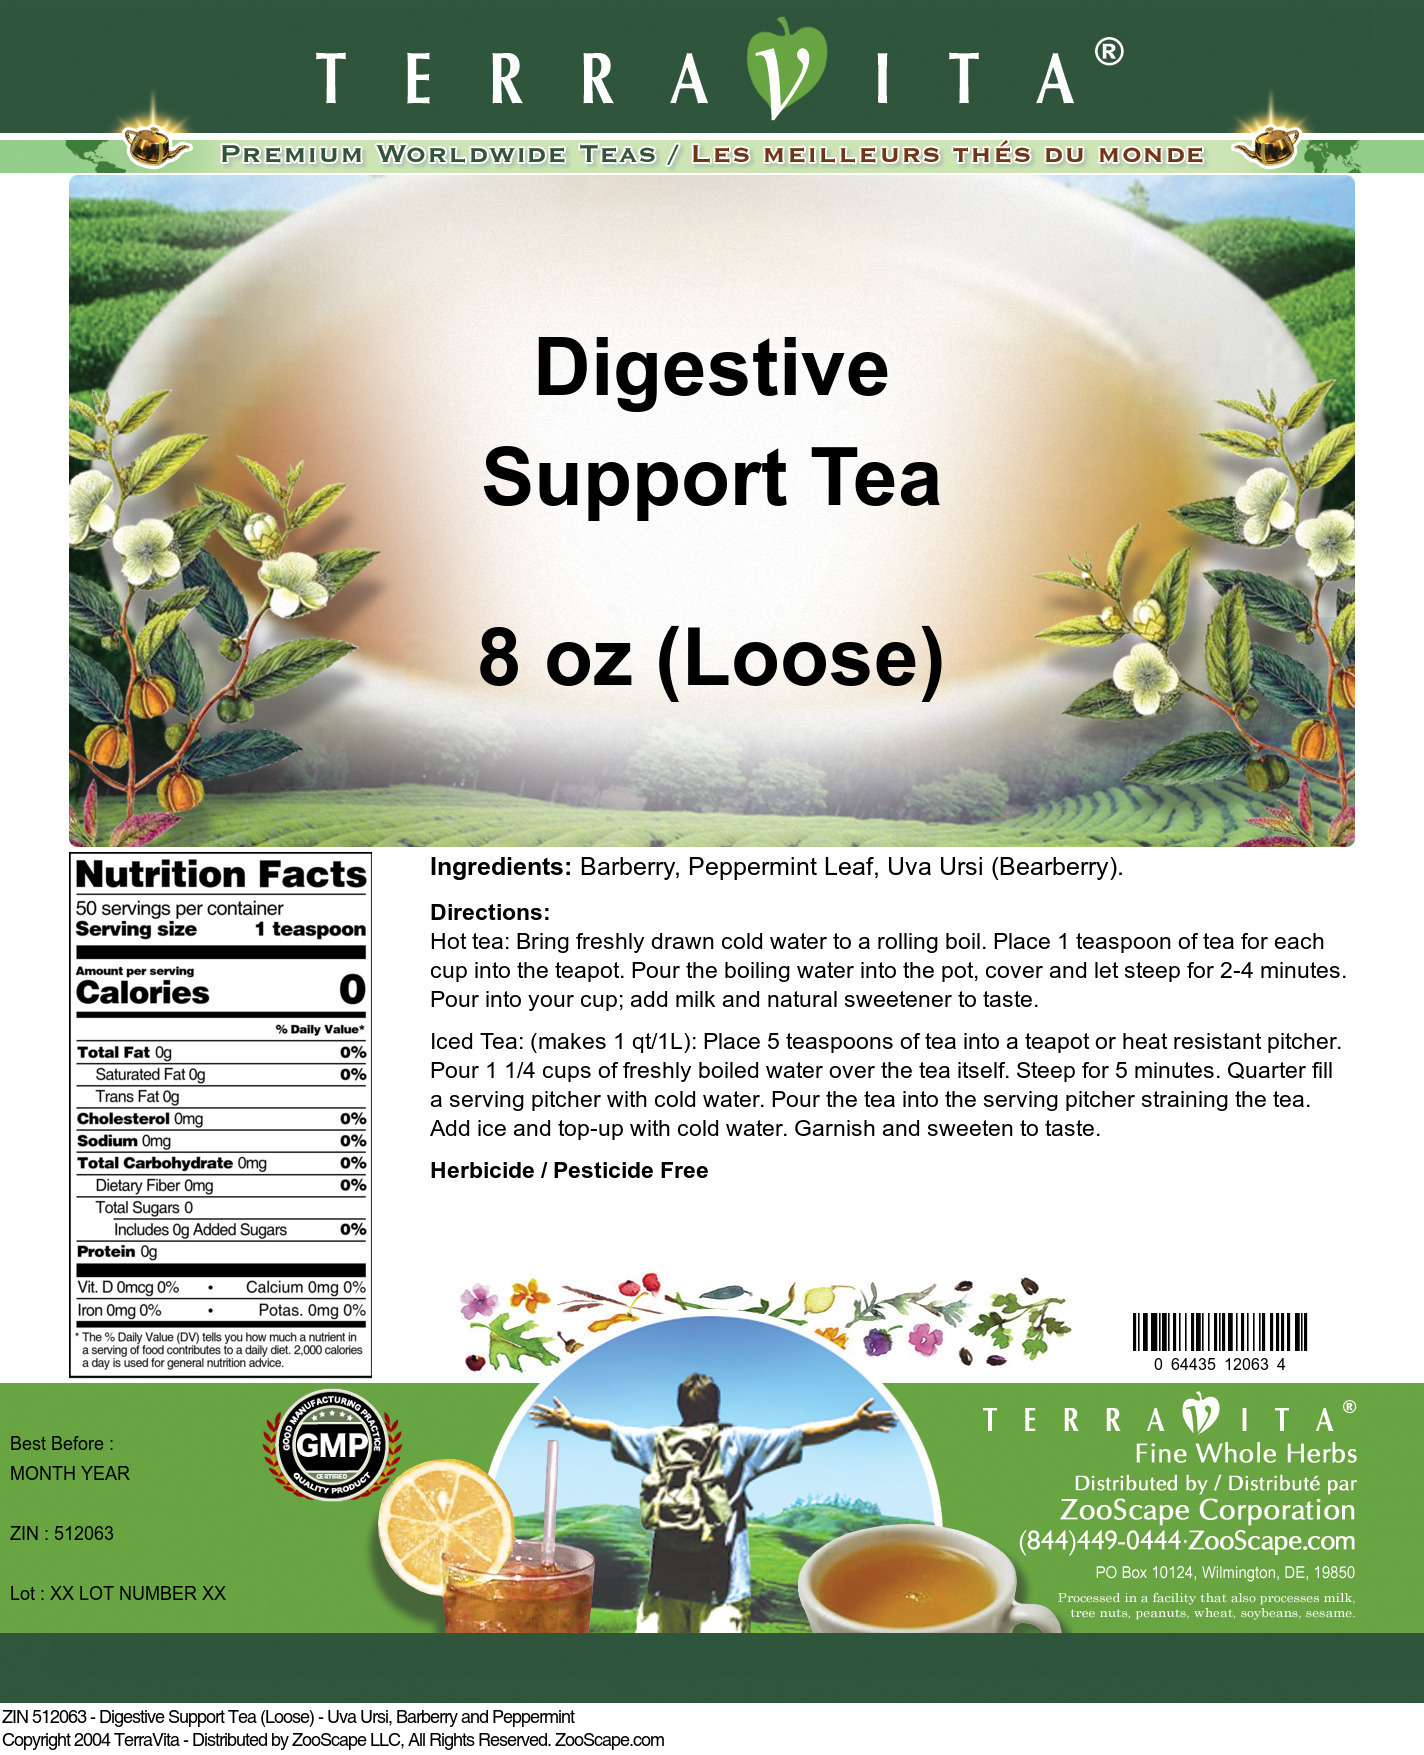 Digestive Support Tea (Loose) - Uva Ursi, Barberry and Peppermint